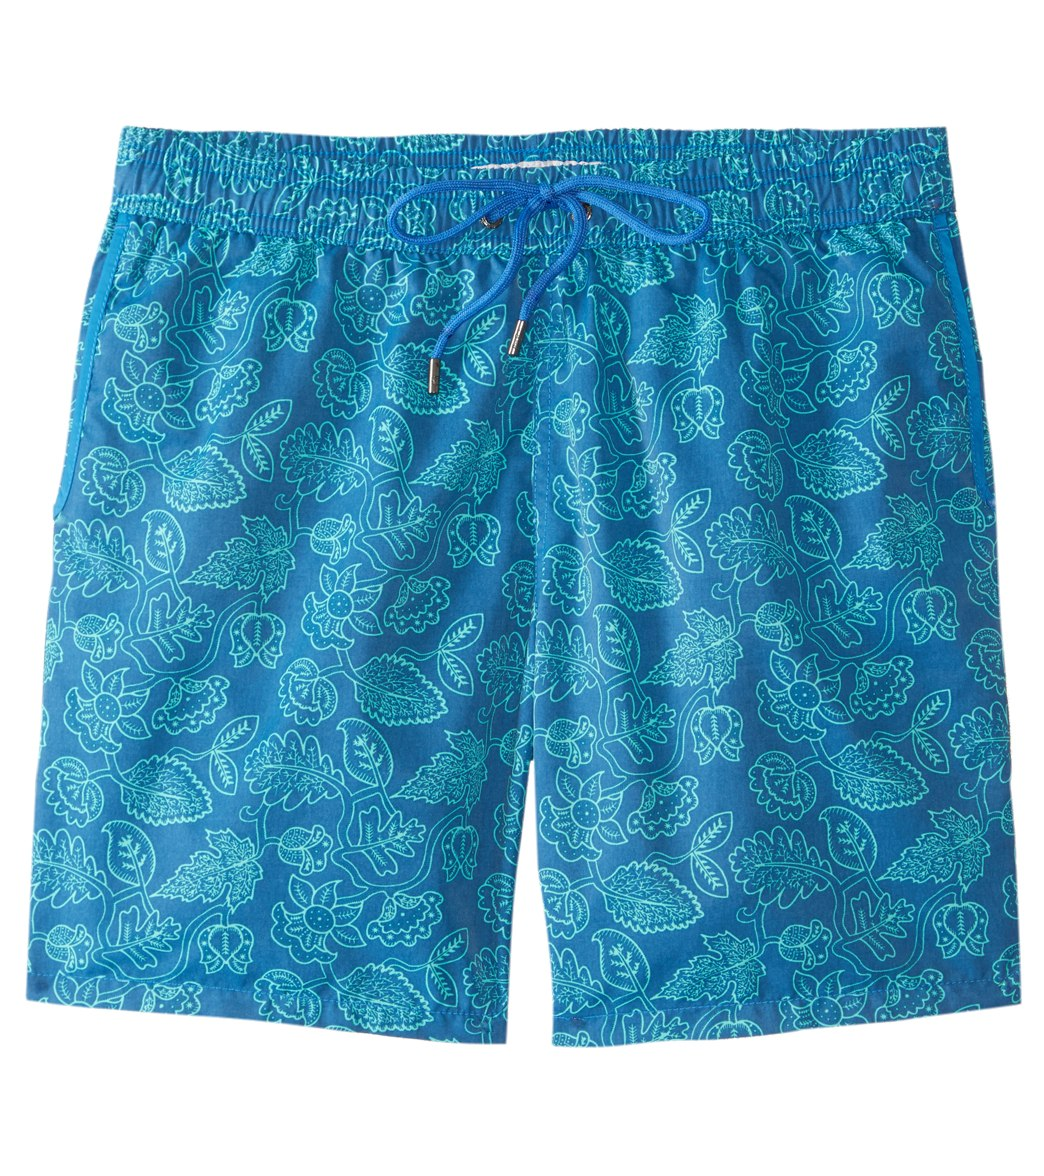 b21ea0d667 Mr.Swim Dale Leafy Floral Swim Trunk at SwimOutlet.com - Free Shipping